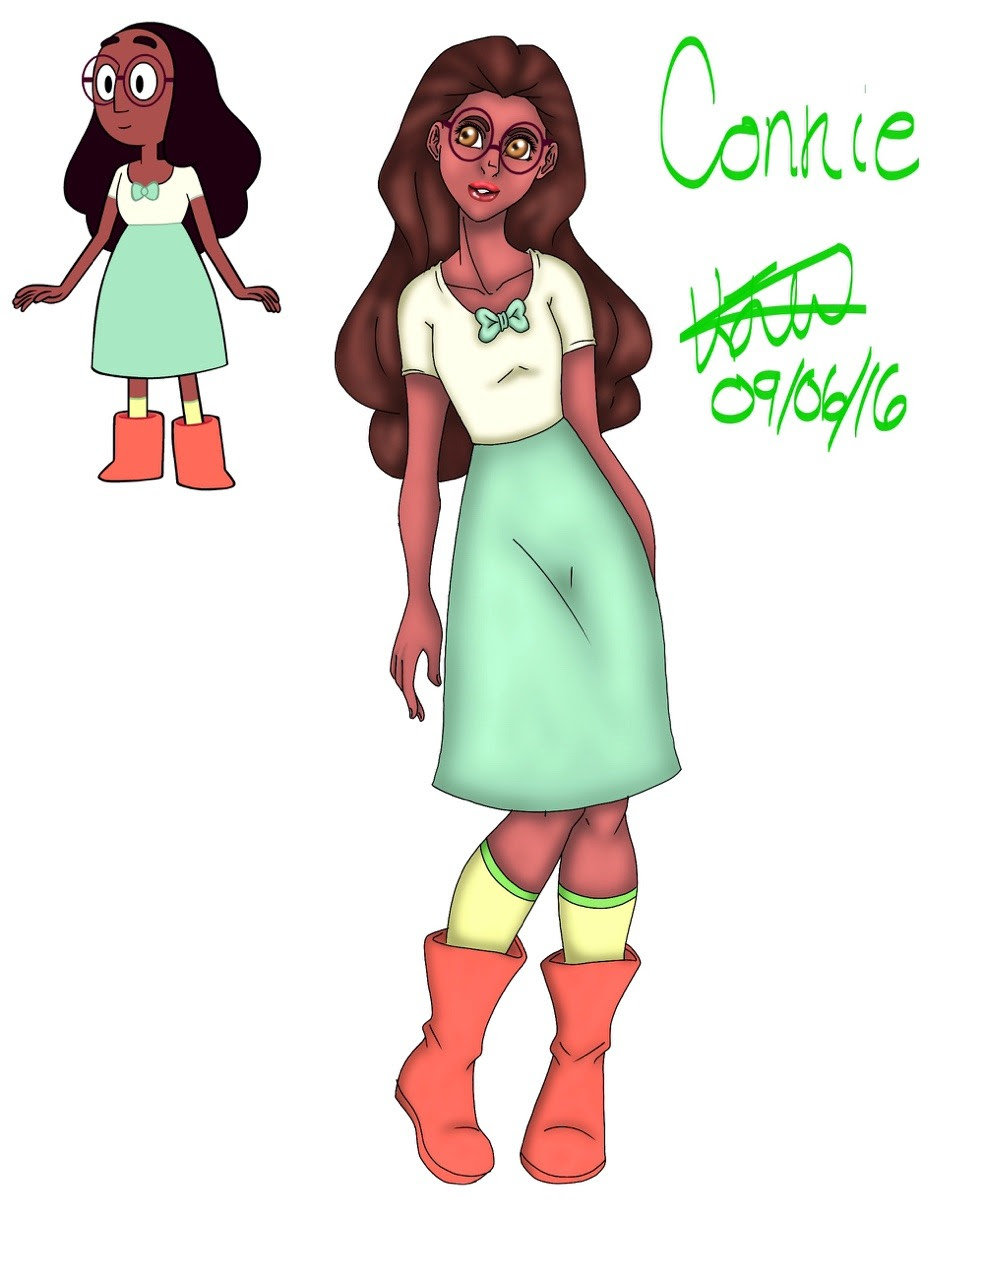 Connie from Steven universe ❤️❤️❤️🙈🙈🙈🙈